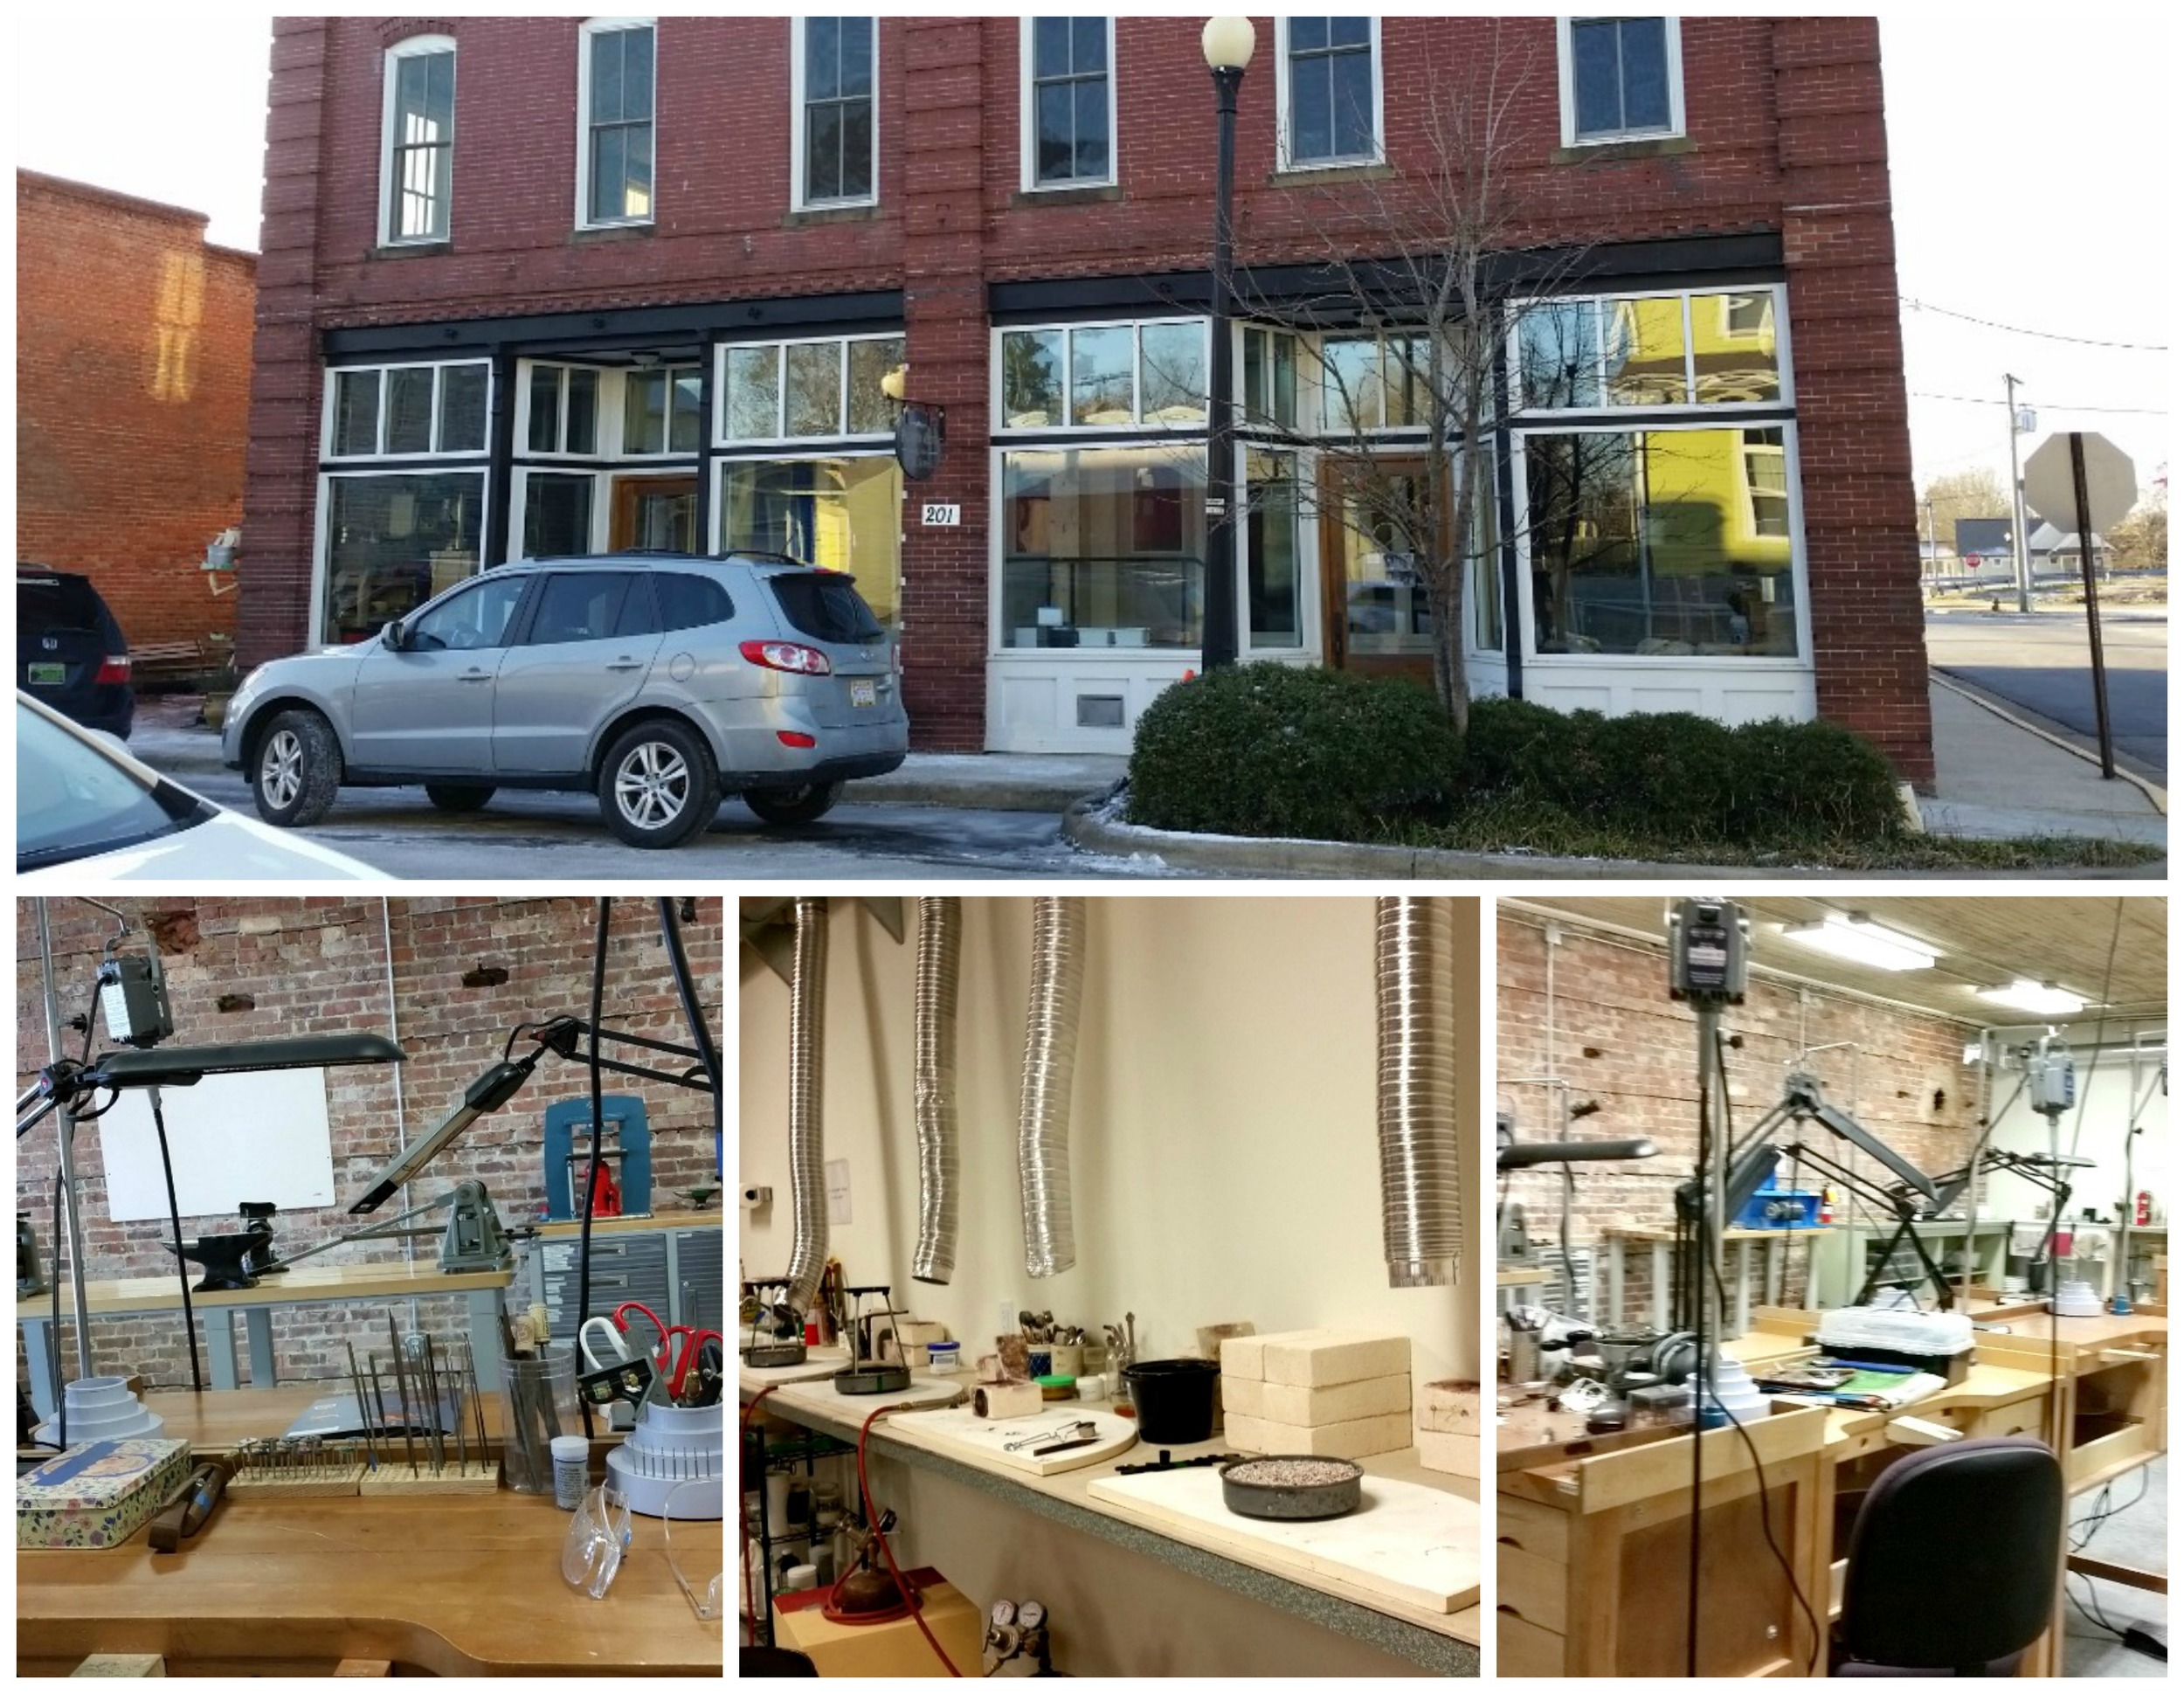 Pocosin Arts, jewelry studio - located in Columbia, NC.